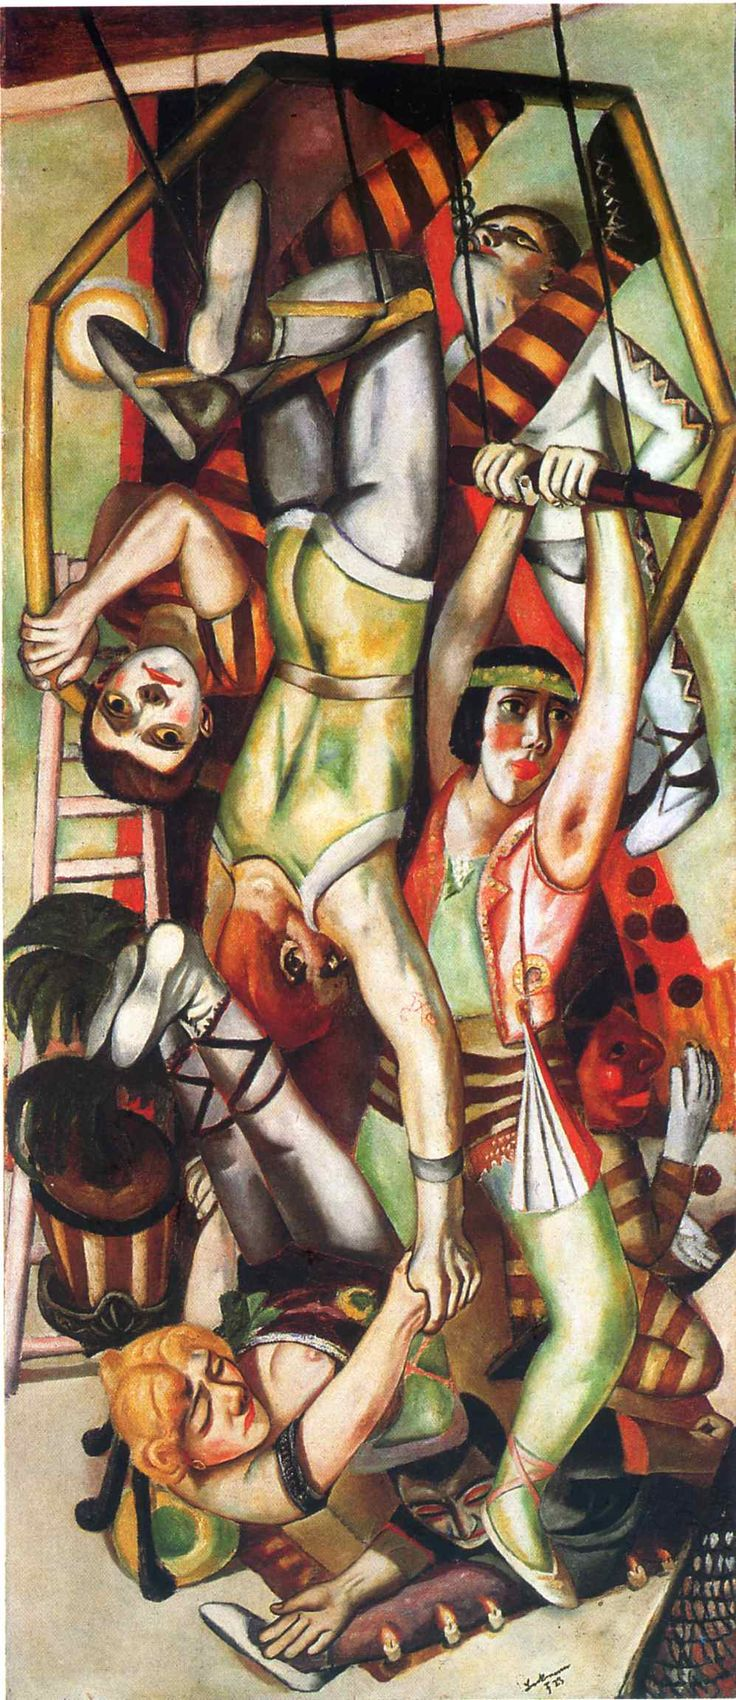 www.gorringeantiques.co.uk Max Beckmann